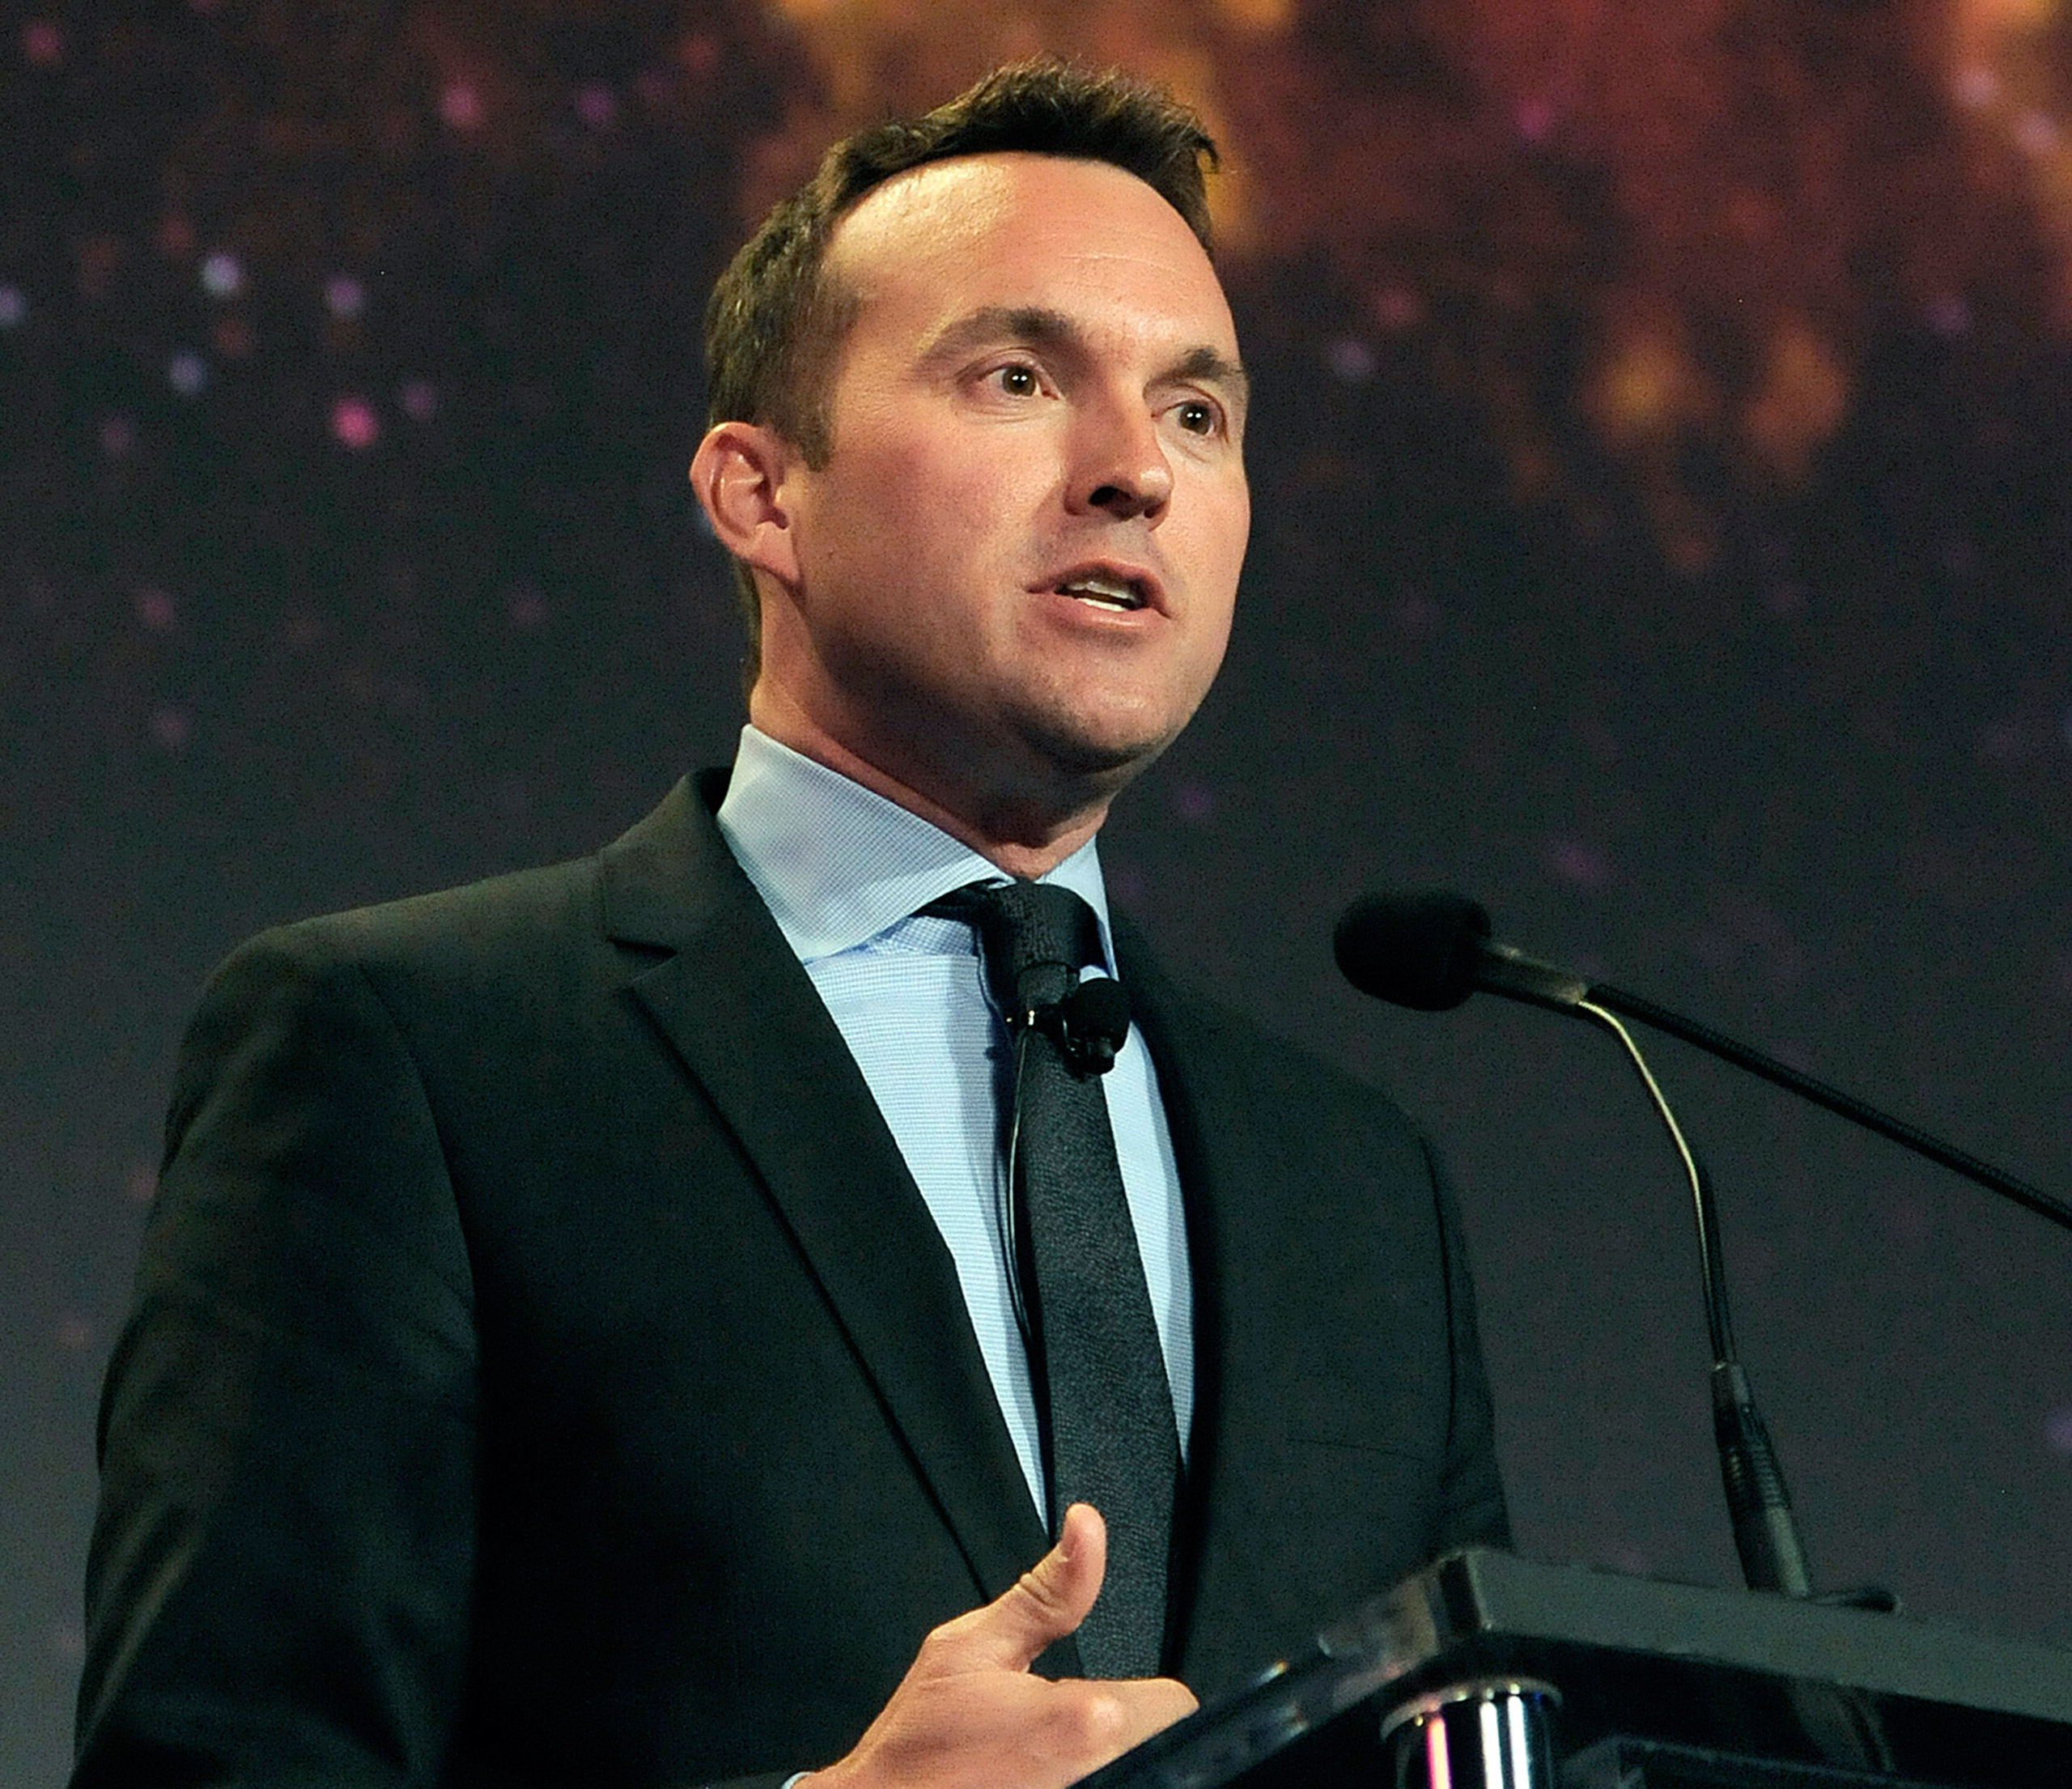 This photo provided by the U.S. Air Force shows Eric Fanning speaking at the 30th Space Symposium Corporate Partnership dinner in Colorado Springs, Colo., on May 20, 2014.